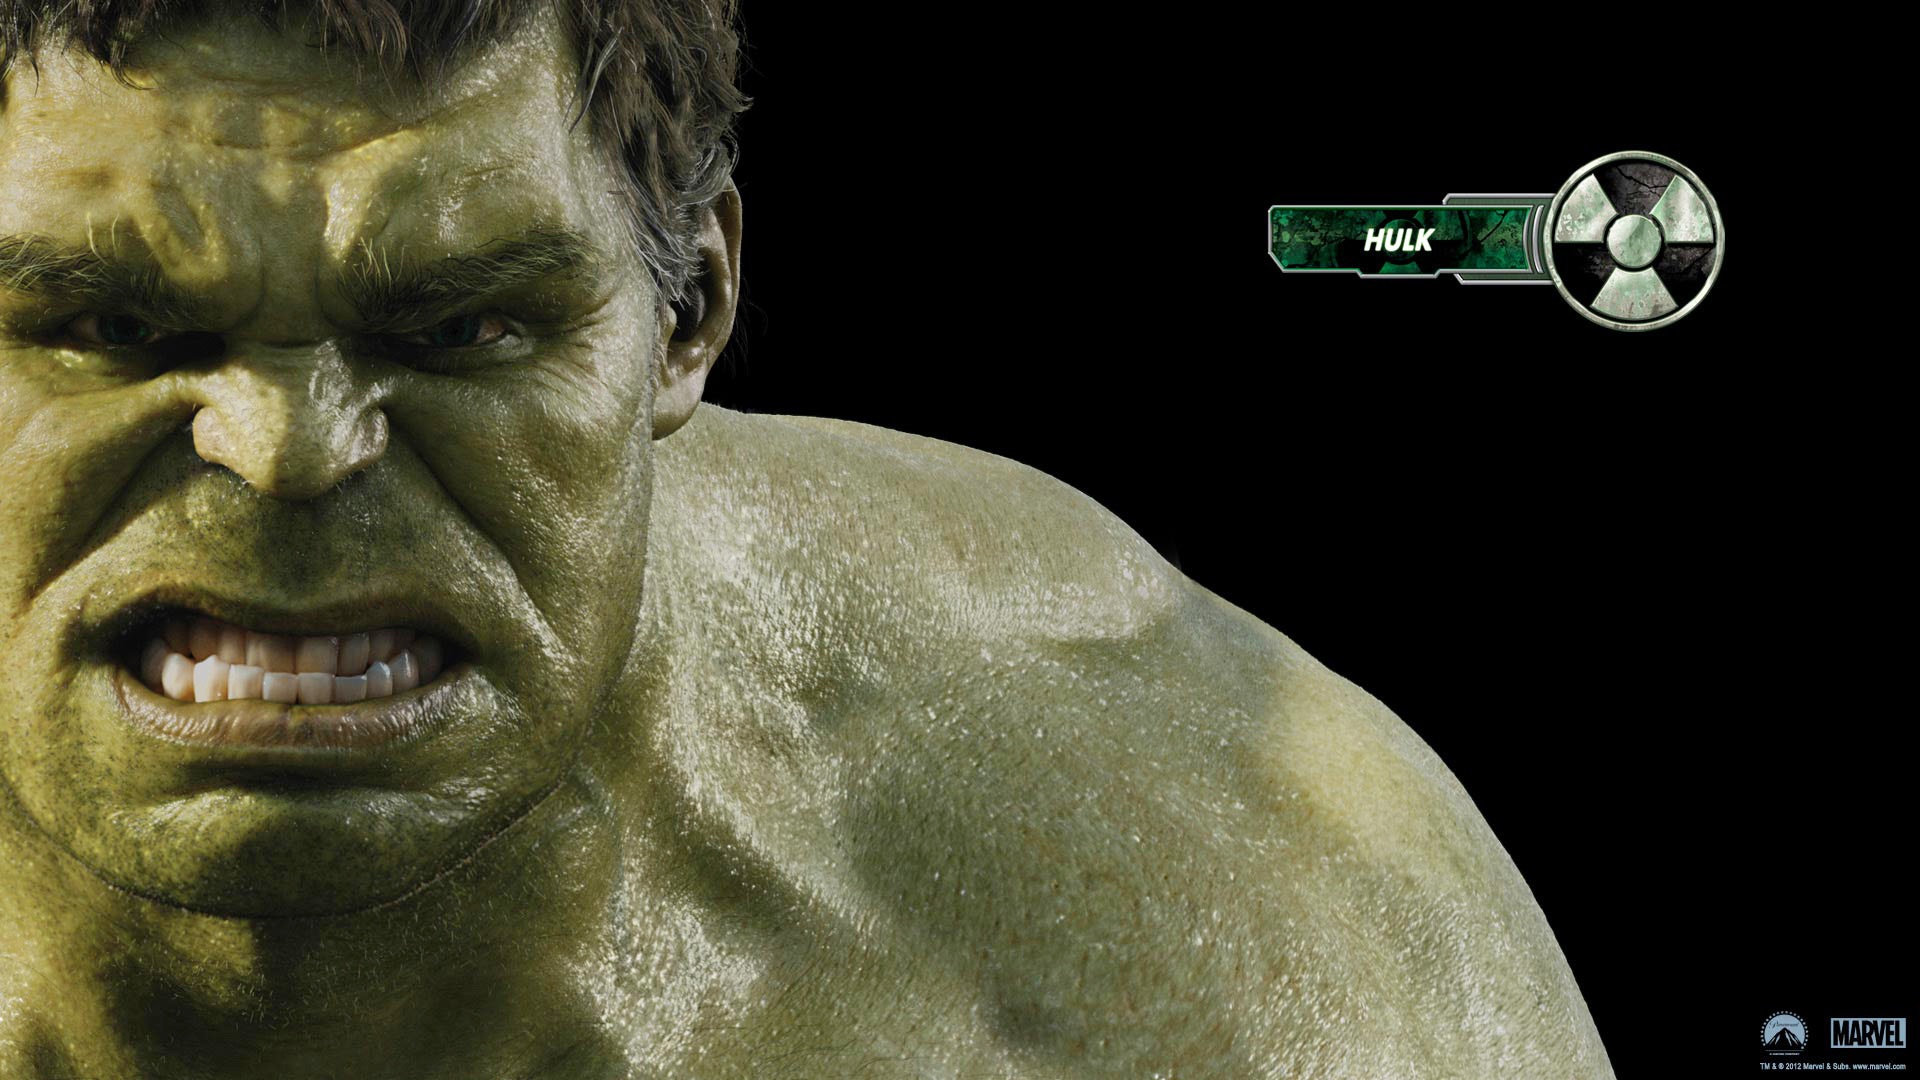 Hulk in Avengers Movie wallpaper